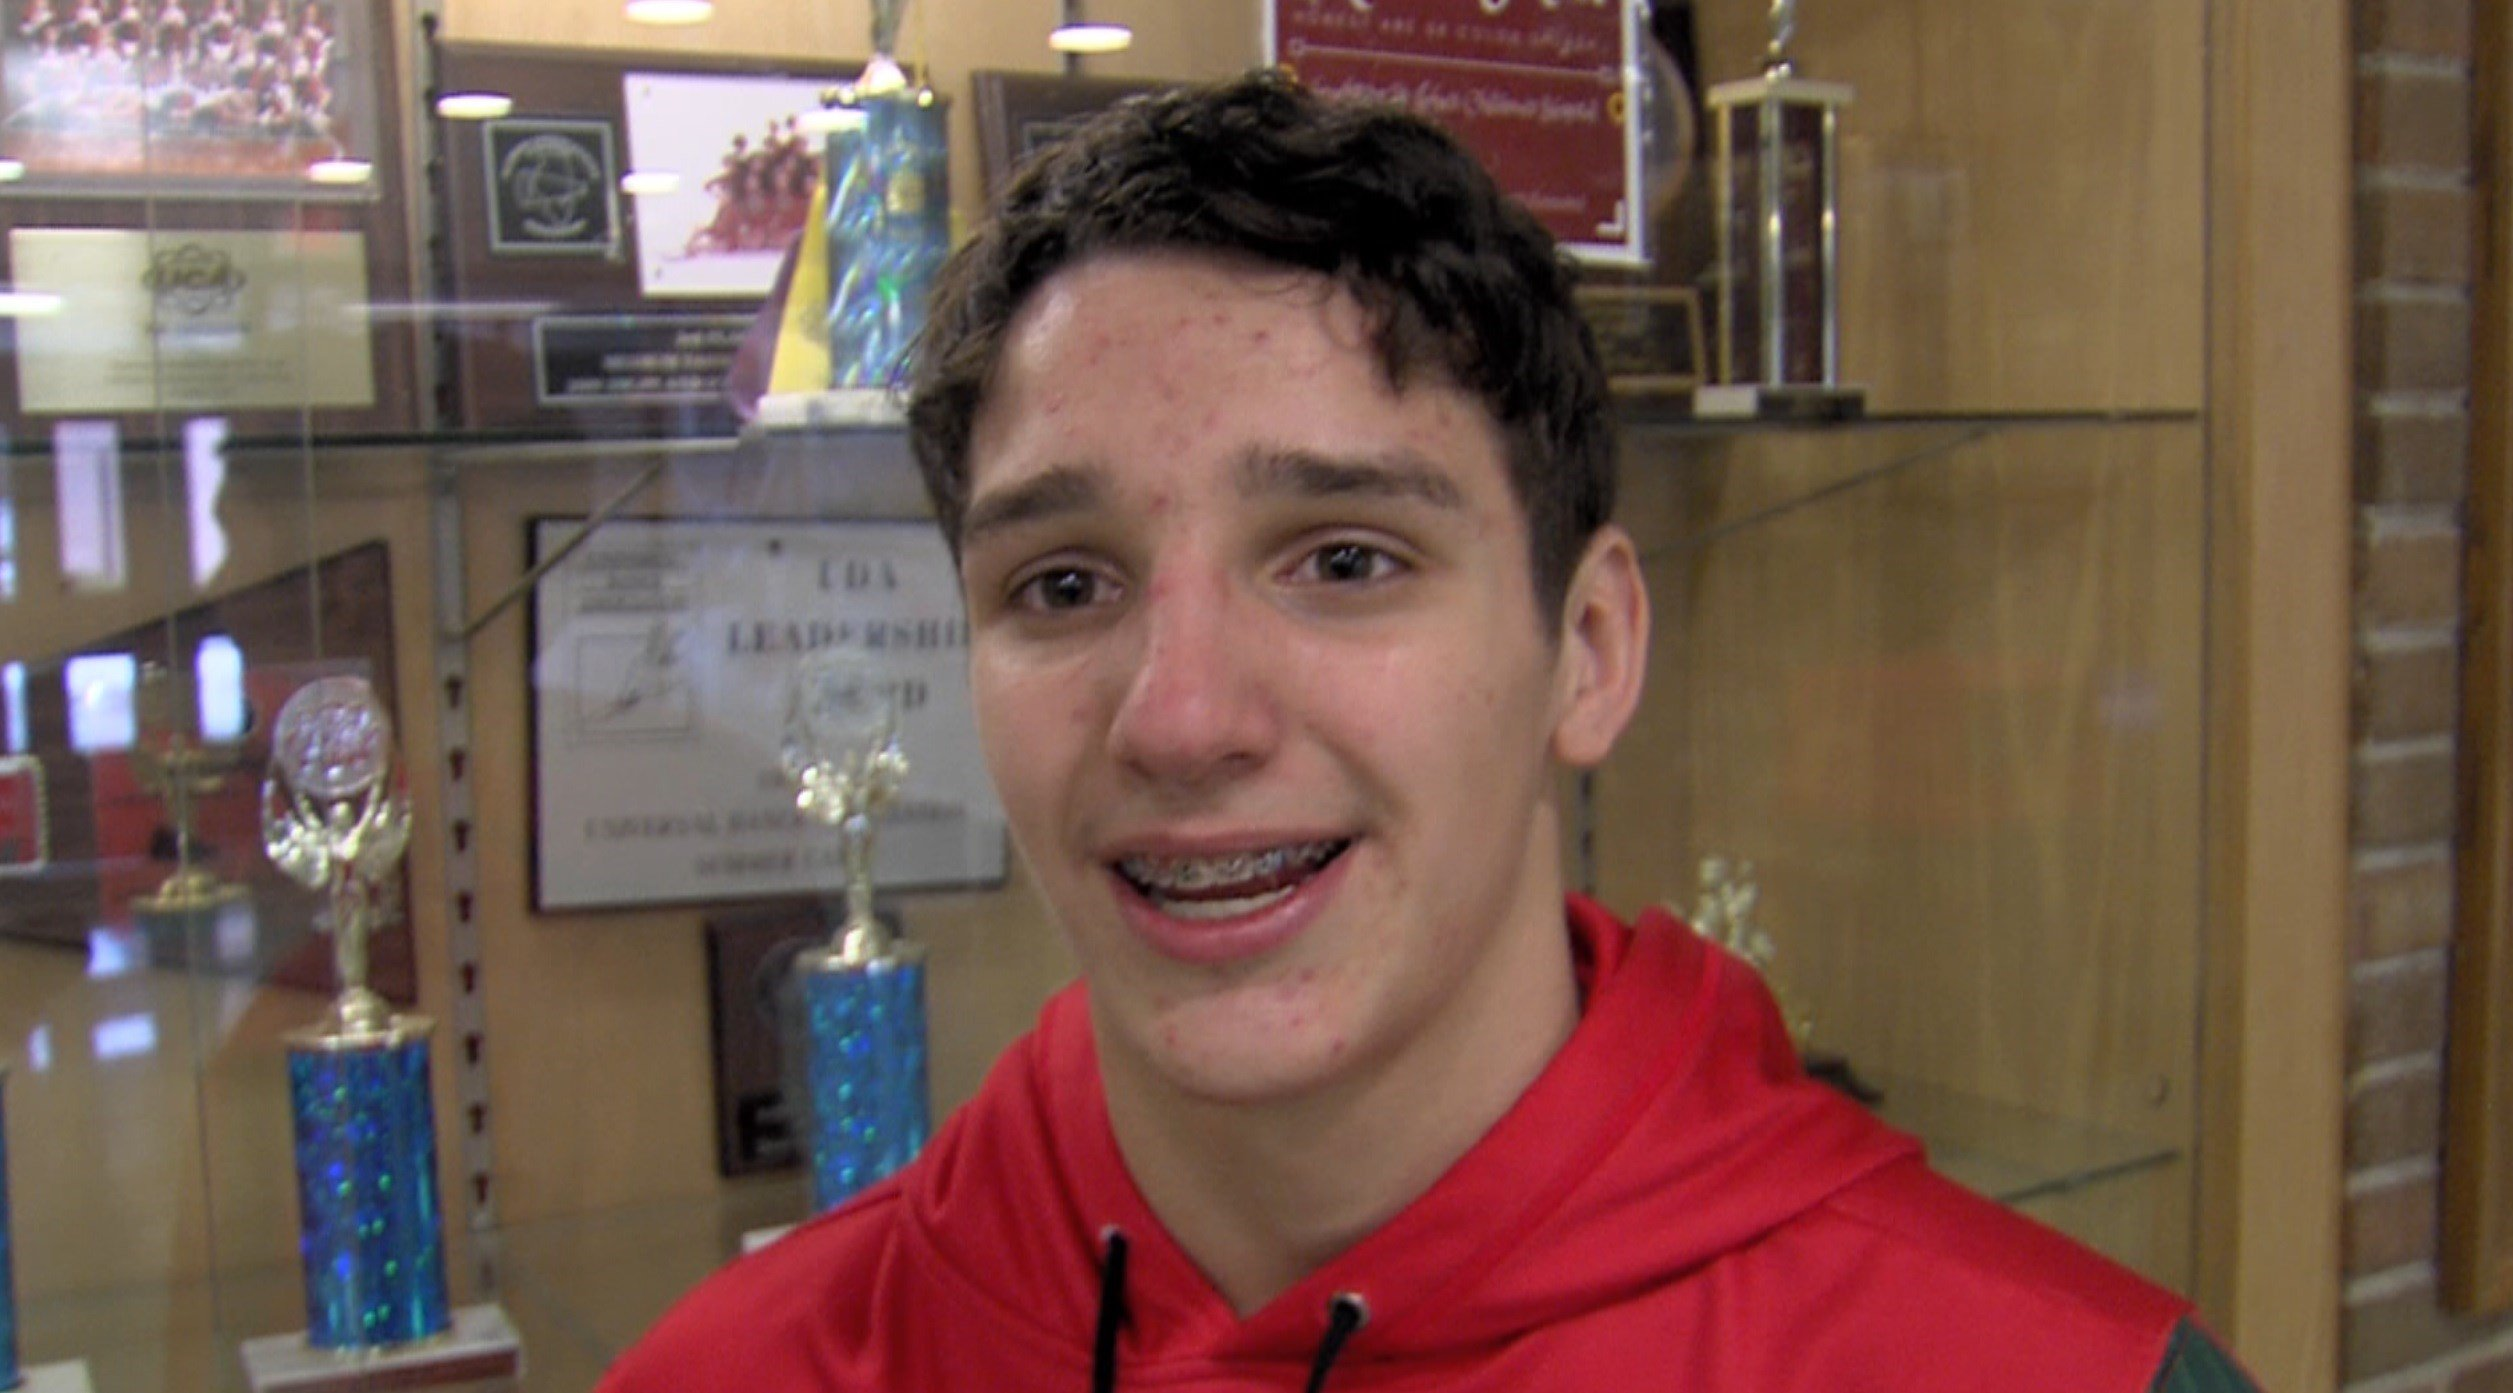 Austin O'Donoghue, 14, is the first Lincoln wrestler in school history to qualify for the state meet.